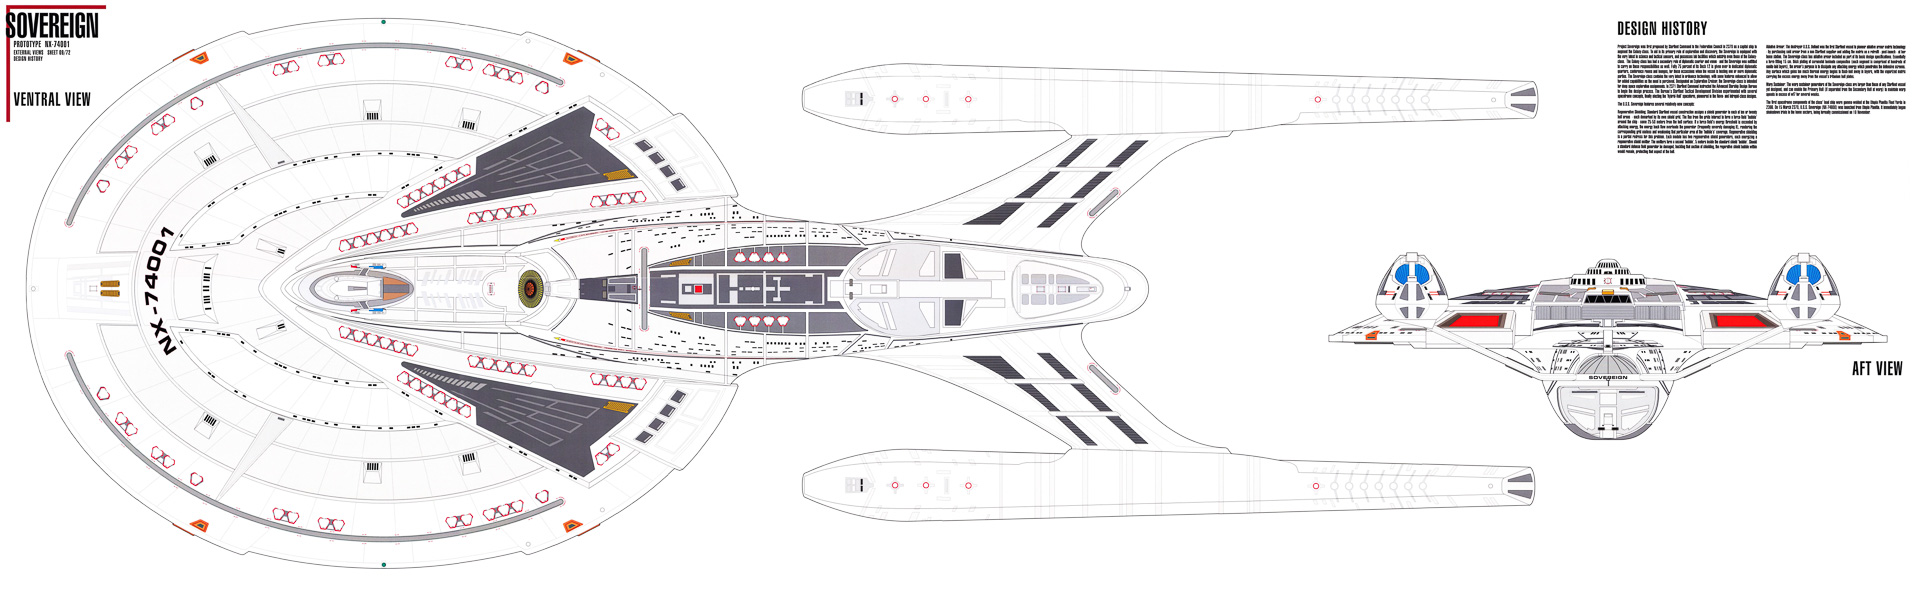 SOVEREIGN CLASS UNDERVIEW